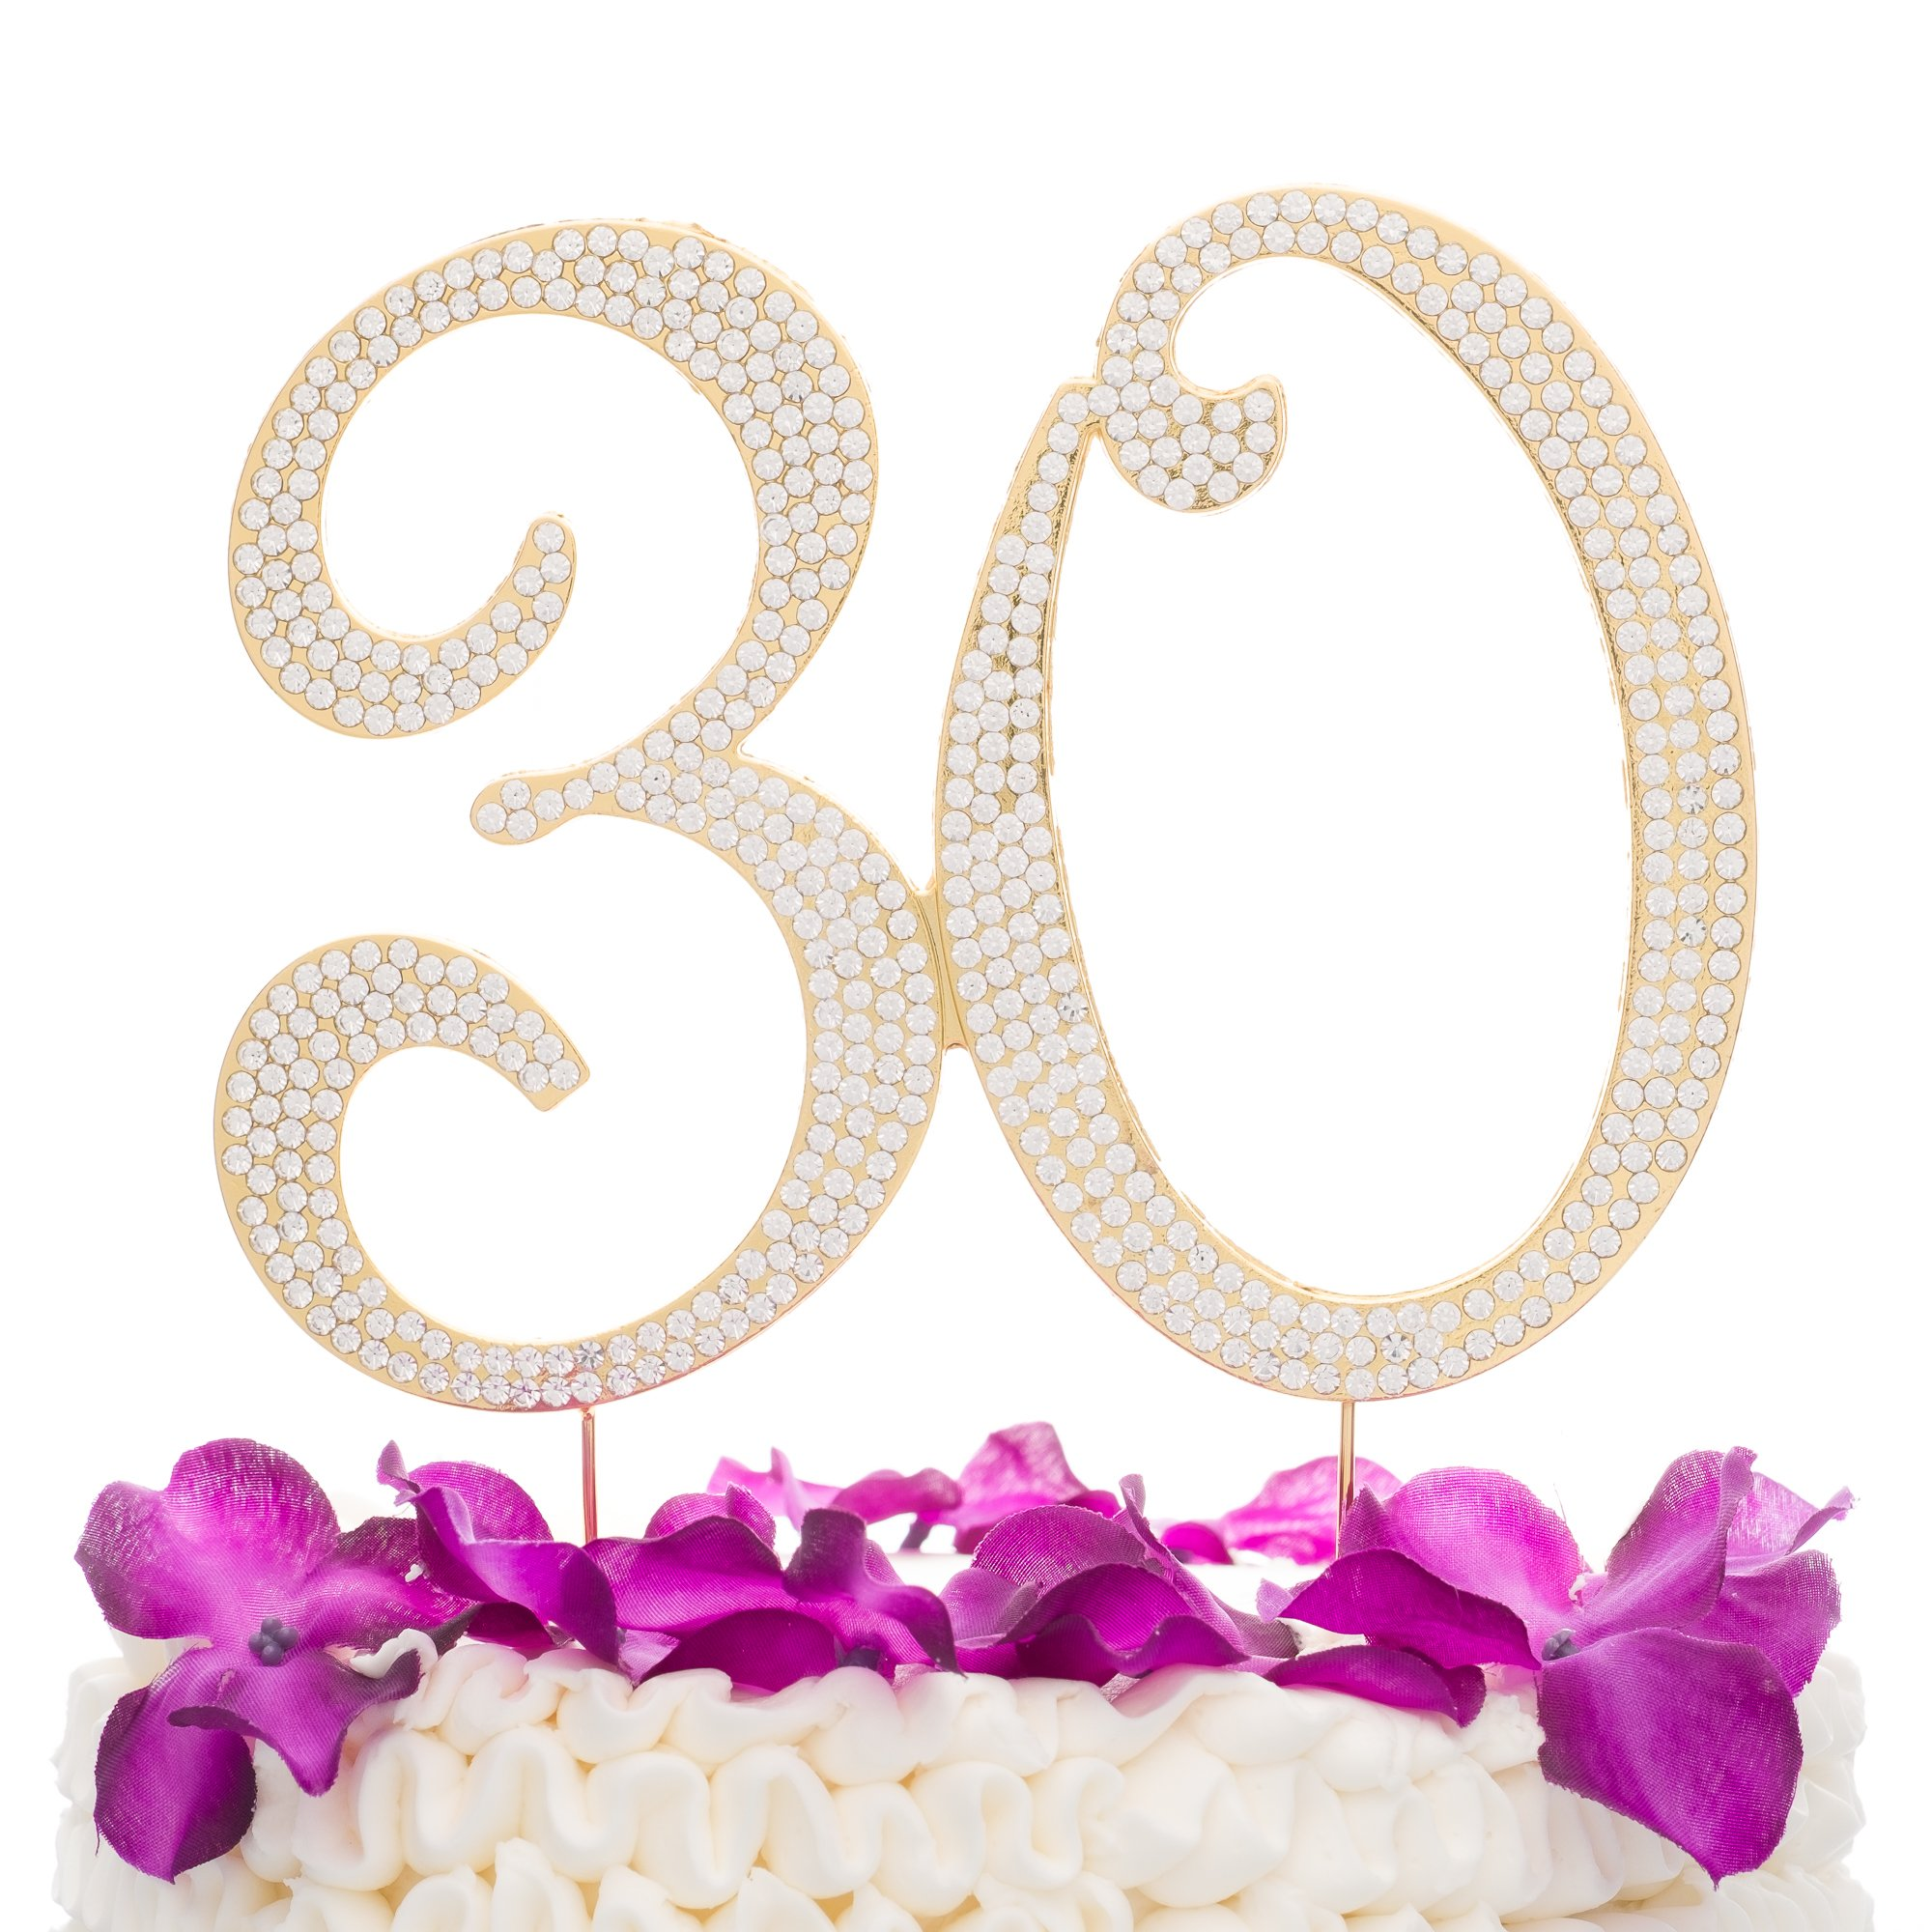 Ella Celebration 30 Cake Topper for 30th Birthday or Anniversary Gold Party Supplies & Decorations (Gold)